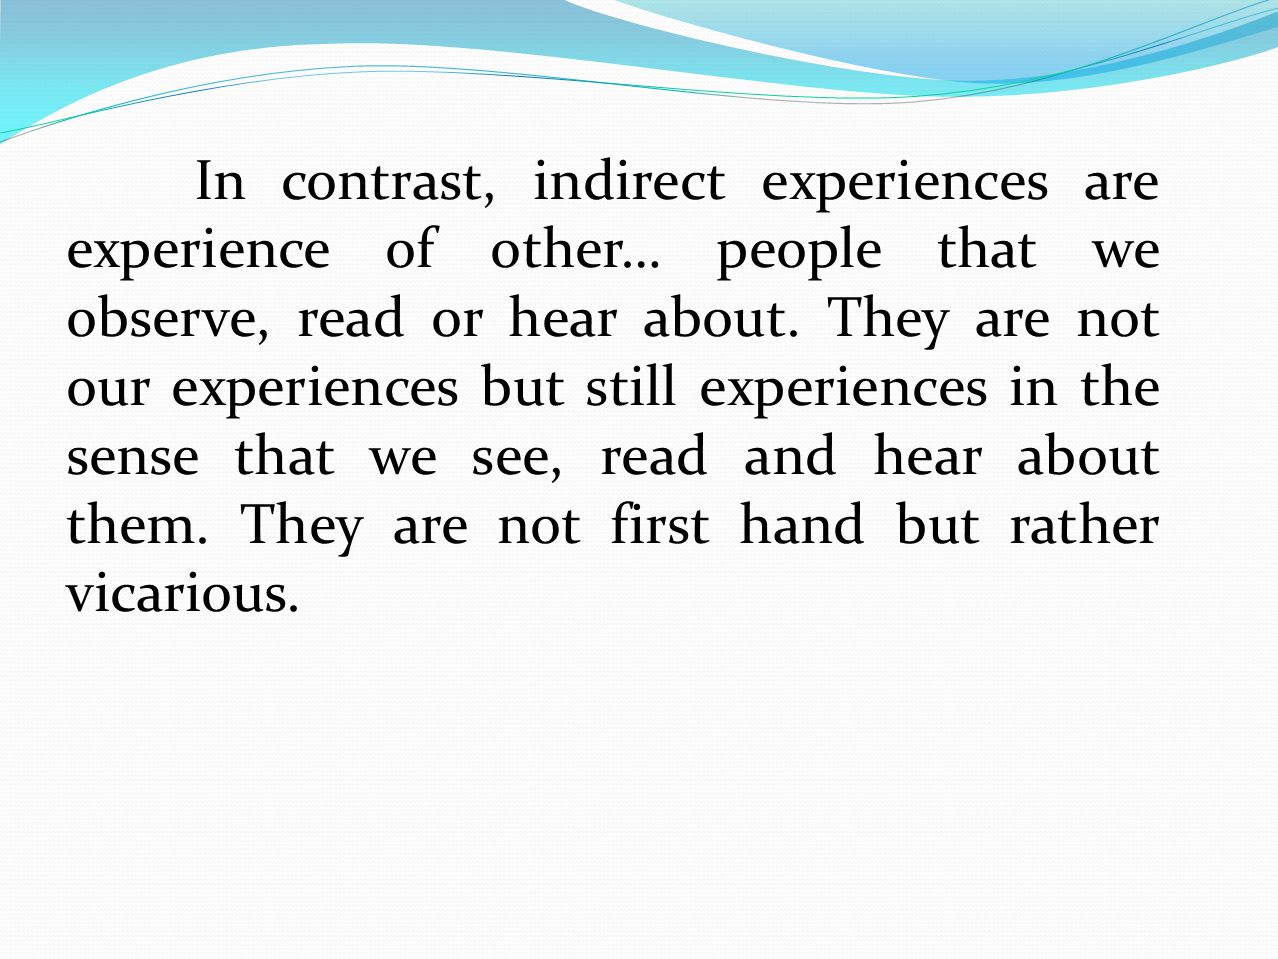 In contrast, indirect experiences are experience of other… people that we observe, read or hear about.